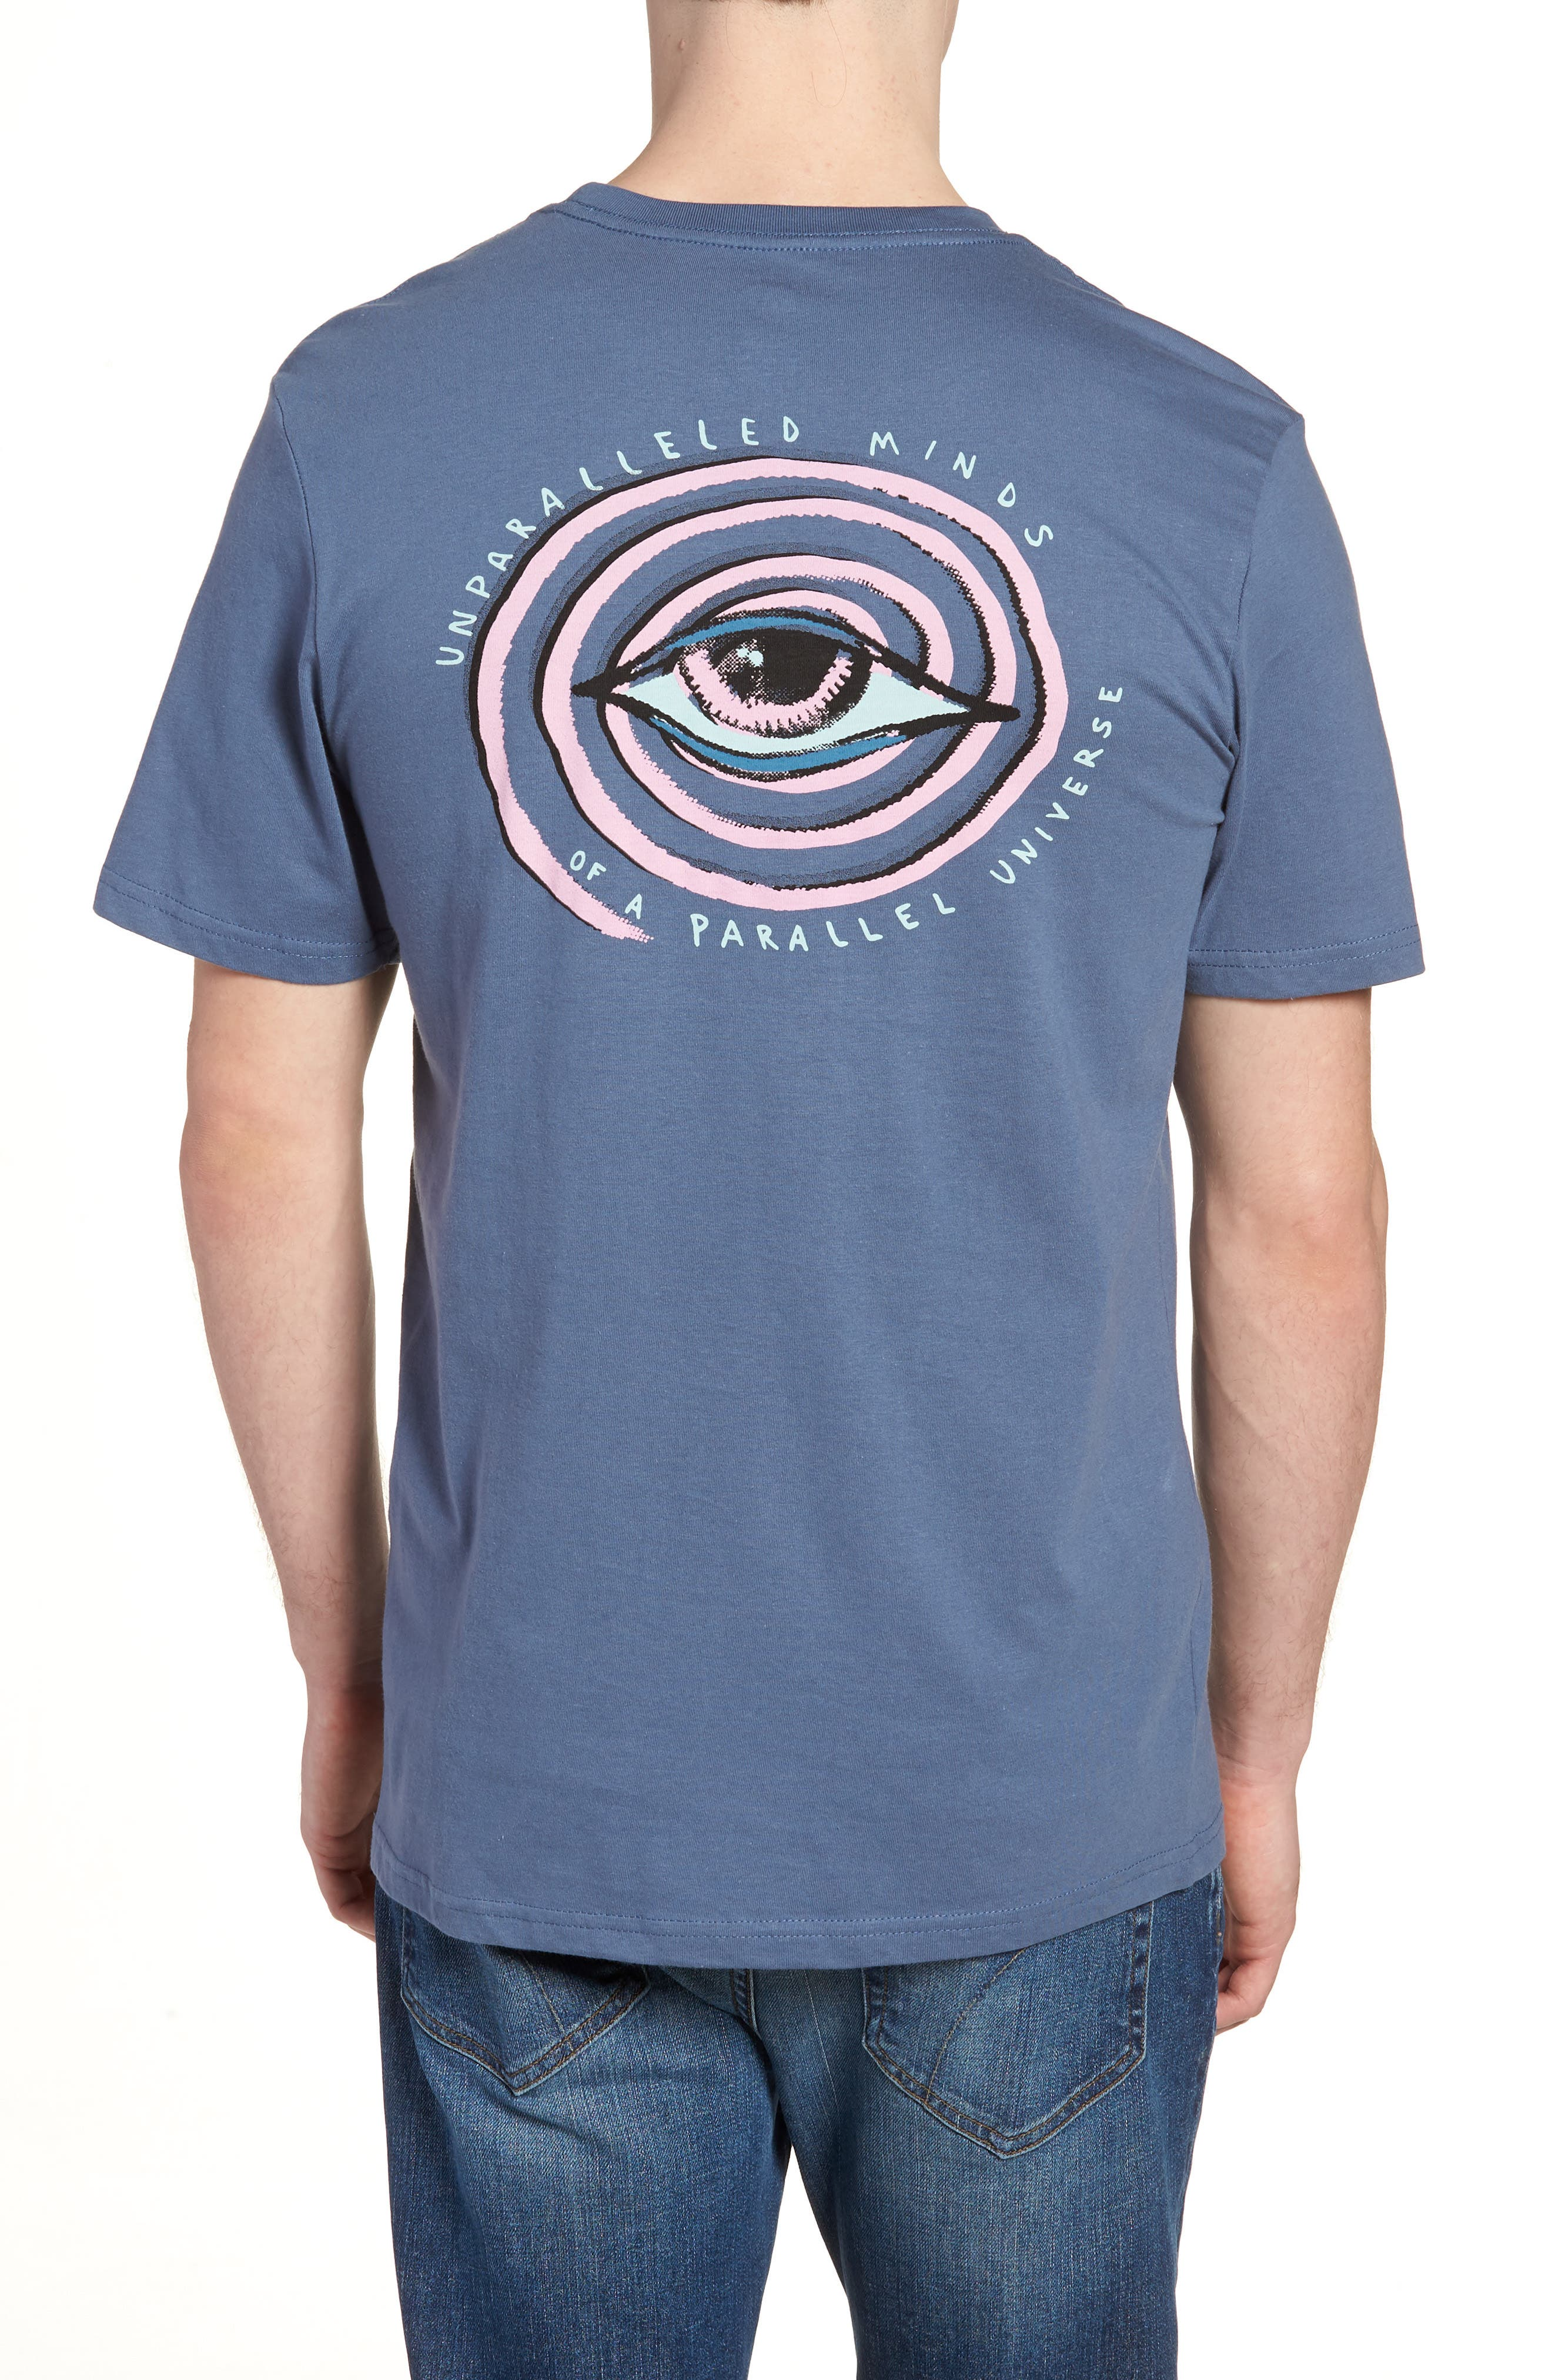 Burch Eye Graphic T-Shirt,                             Alternate thumbnail 2, color,                             463